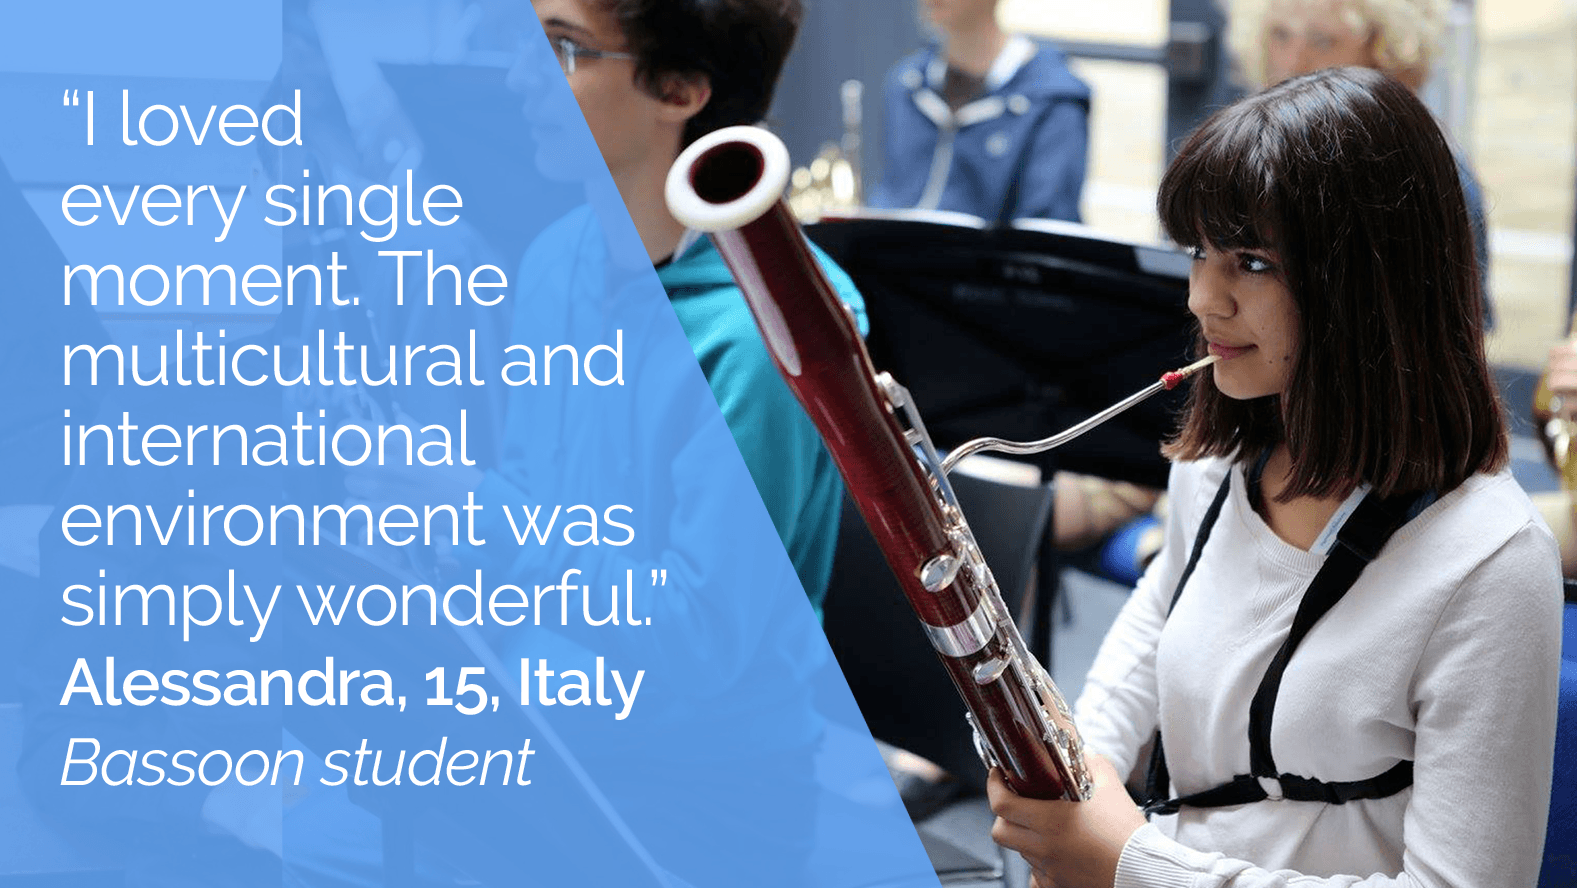 """I loved every single moment"" - Alessandra, Bassoon student, summer camp"